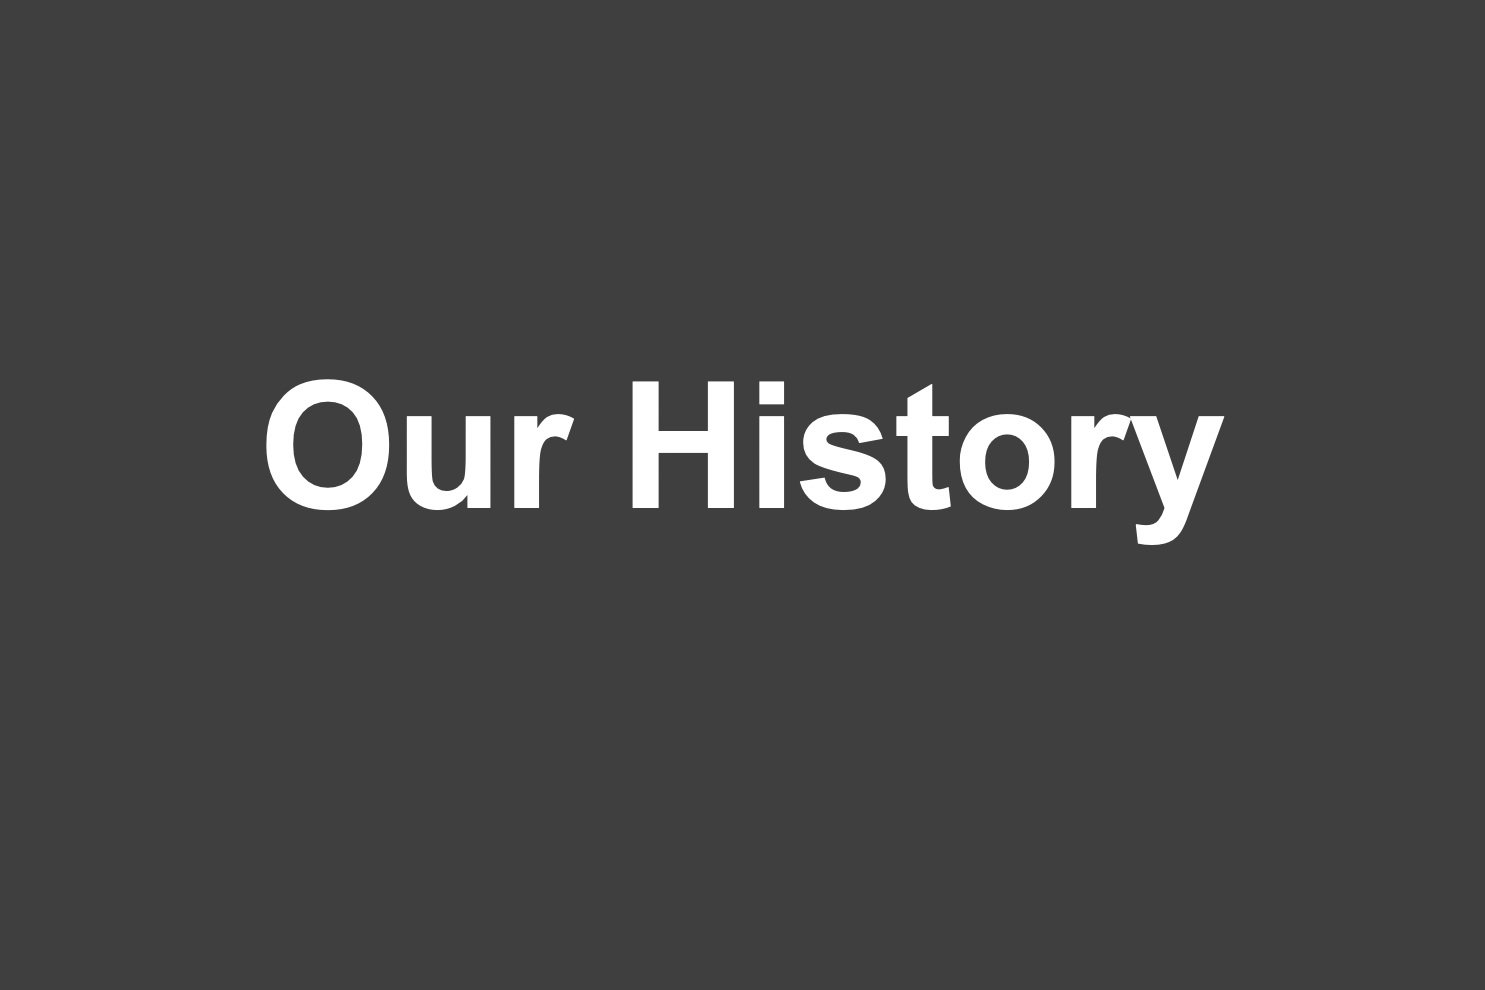 Click Here on Our History to view - SailRail Automated Systems Inc. has had a long and proud history serving our customers in the automotive industry and beyond